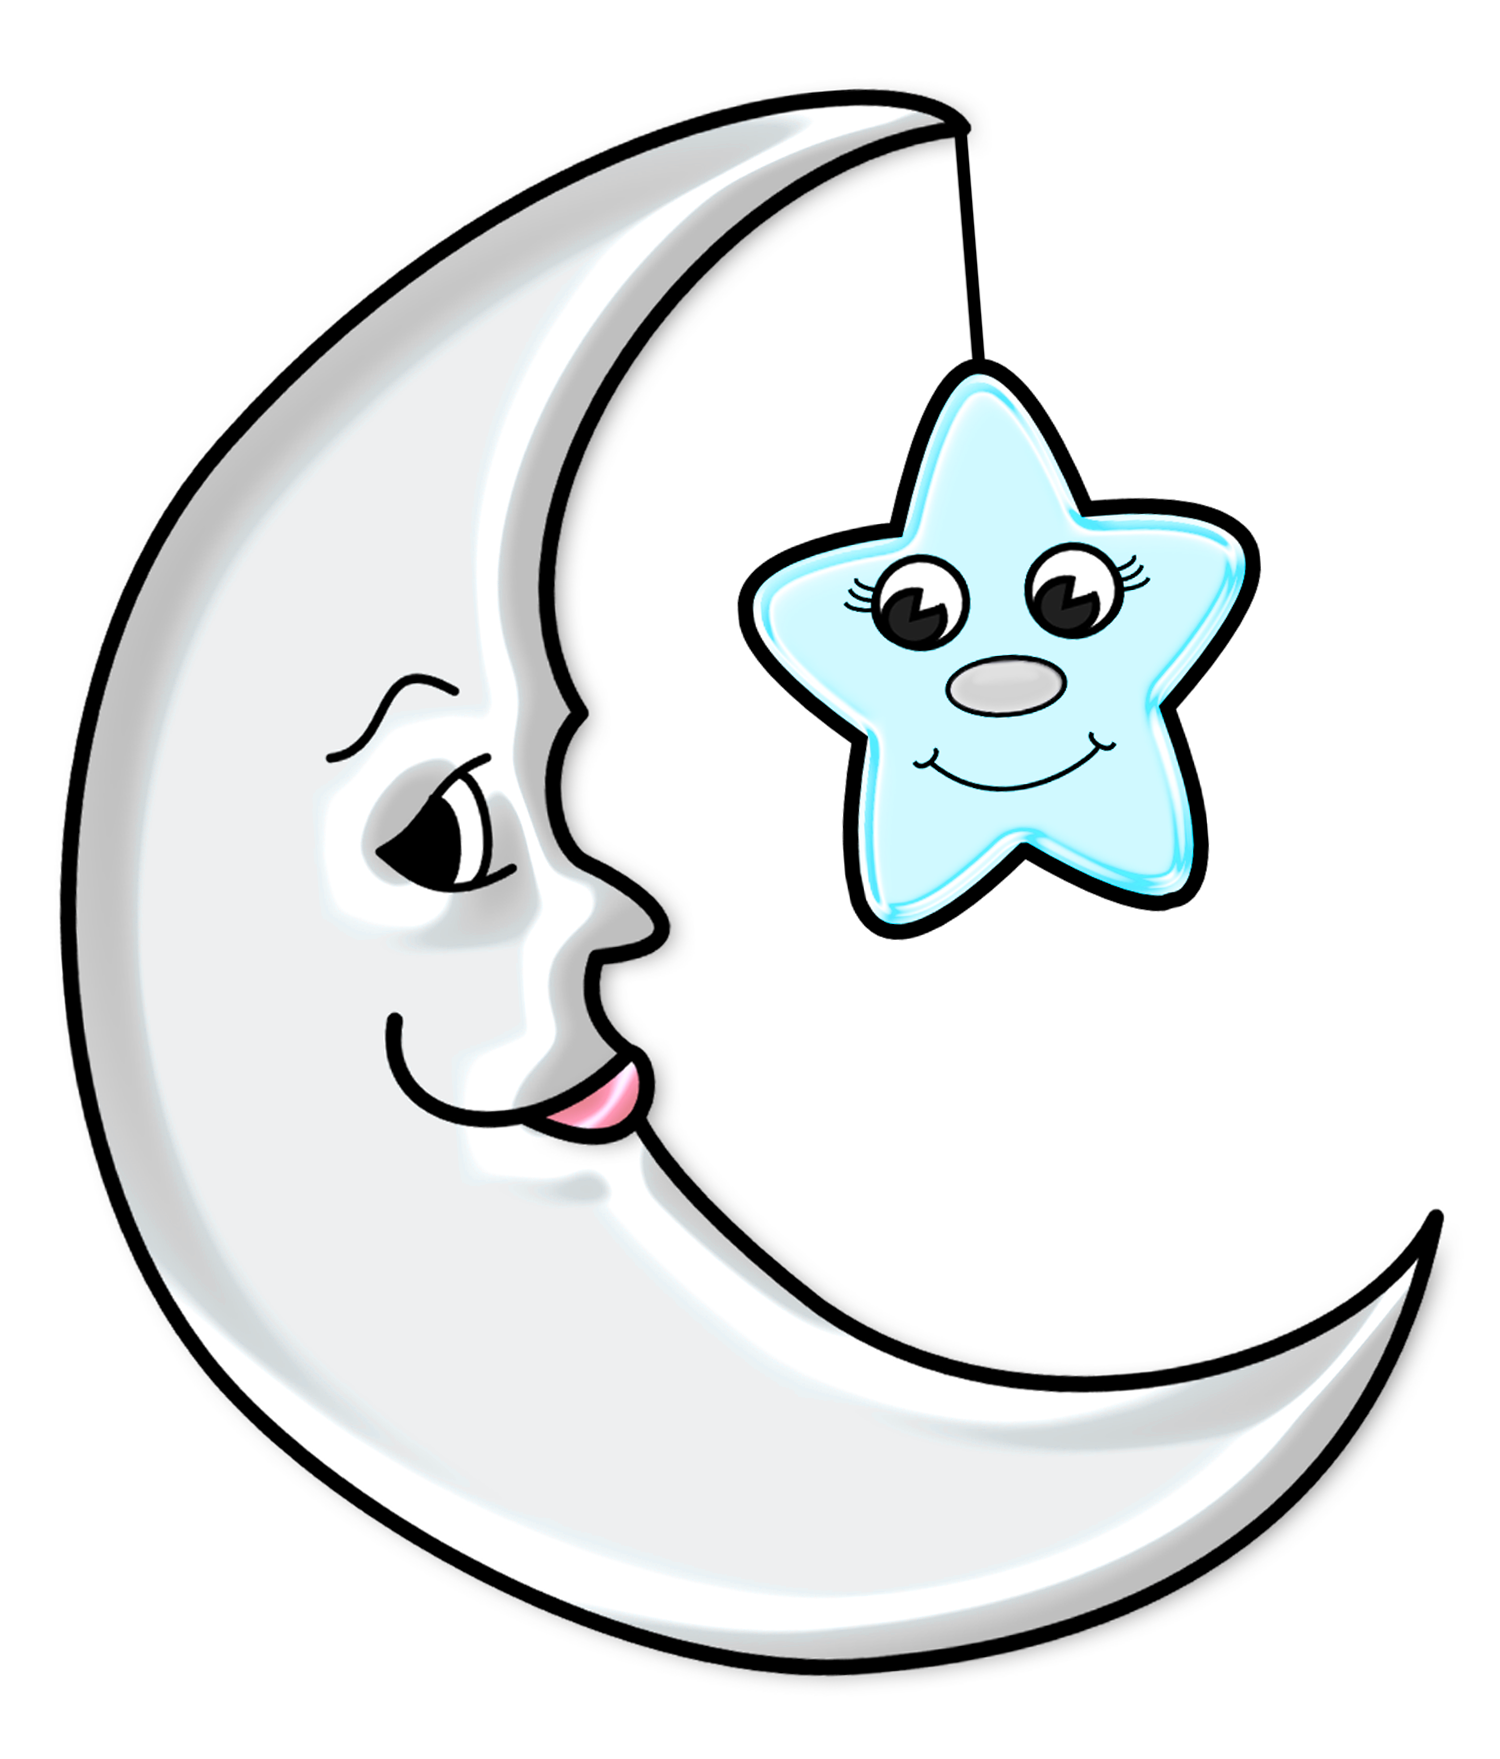 Cliffs drawing moon. Cute with star transparent